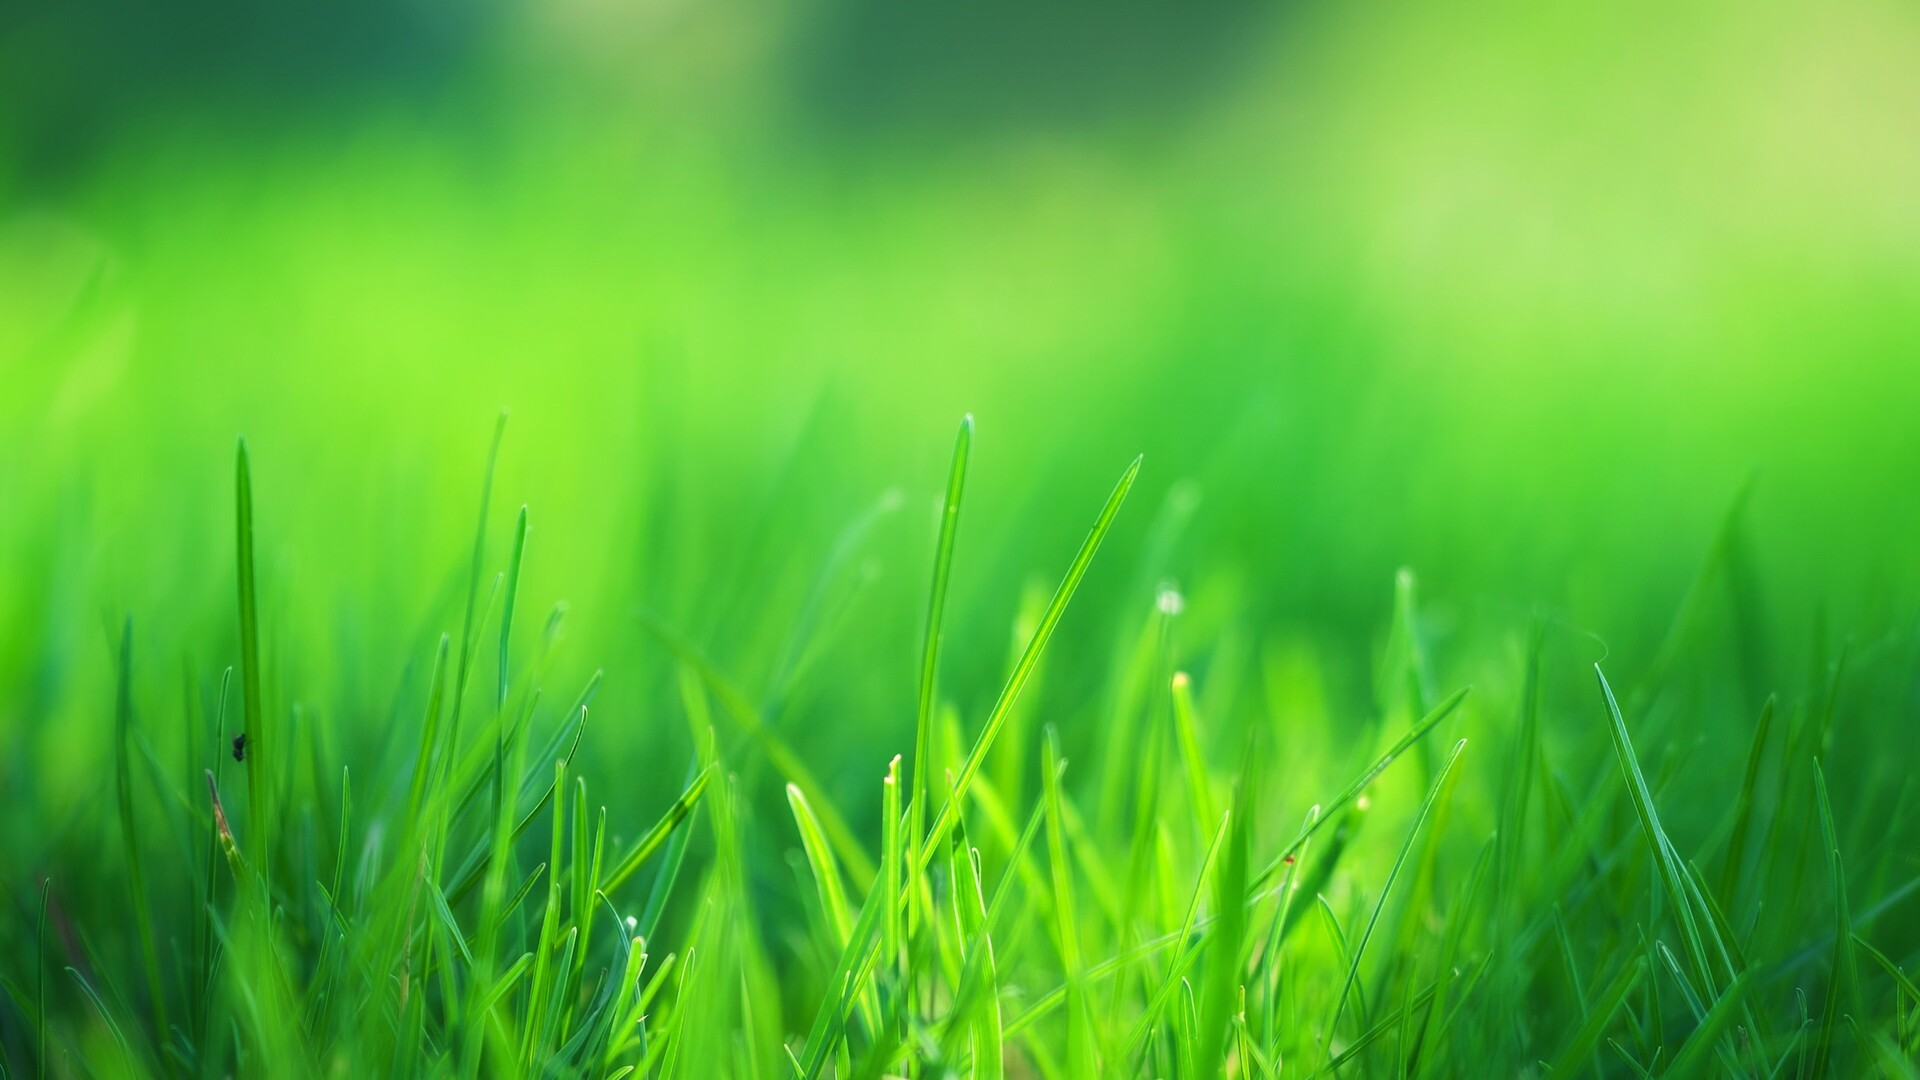 1920x1080 green grass field laptop full hd 1080p hd 4k wallpapers images backgrounds photos and pictures 1920x1080 green grass field laptop full